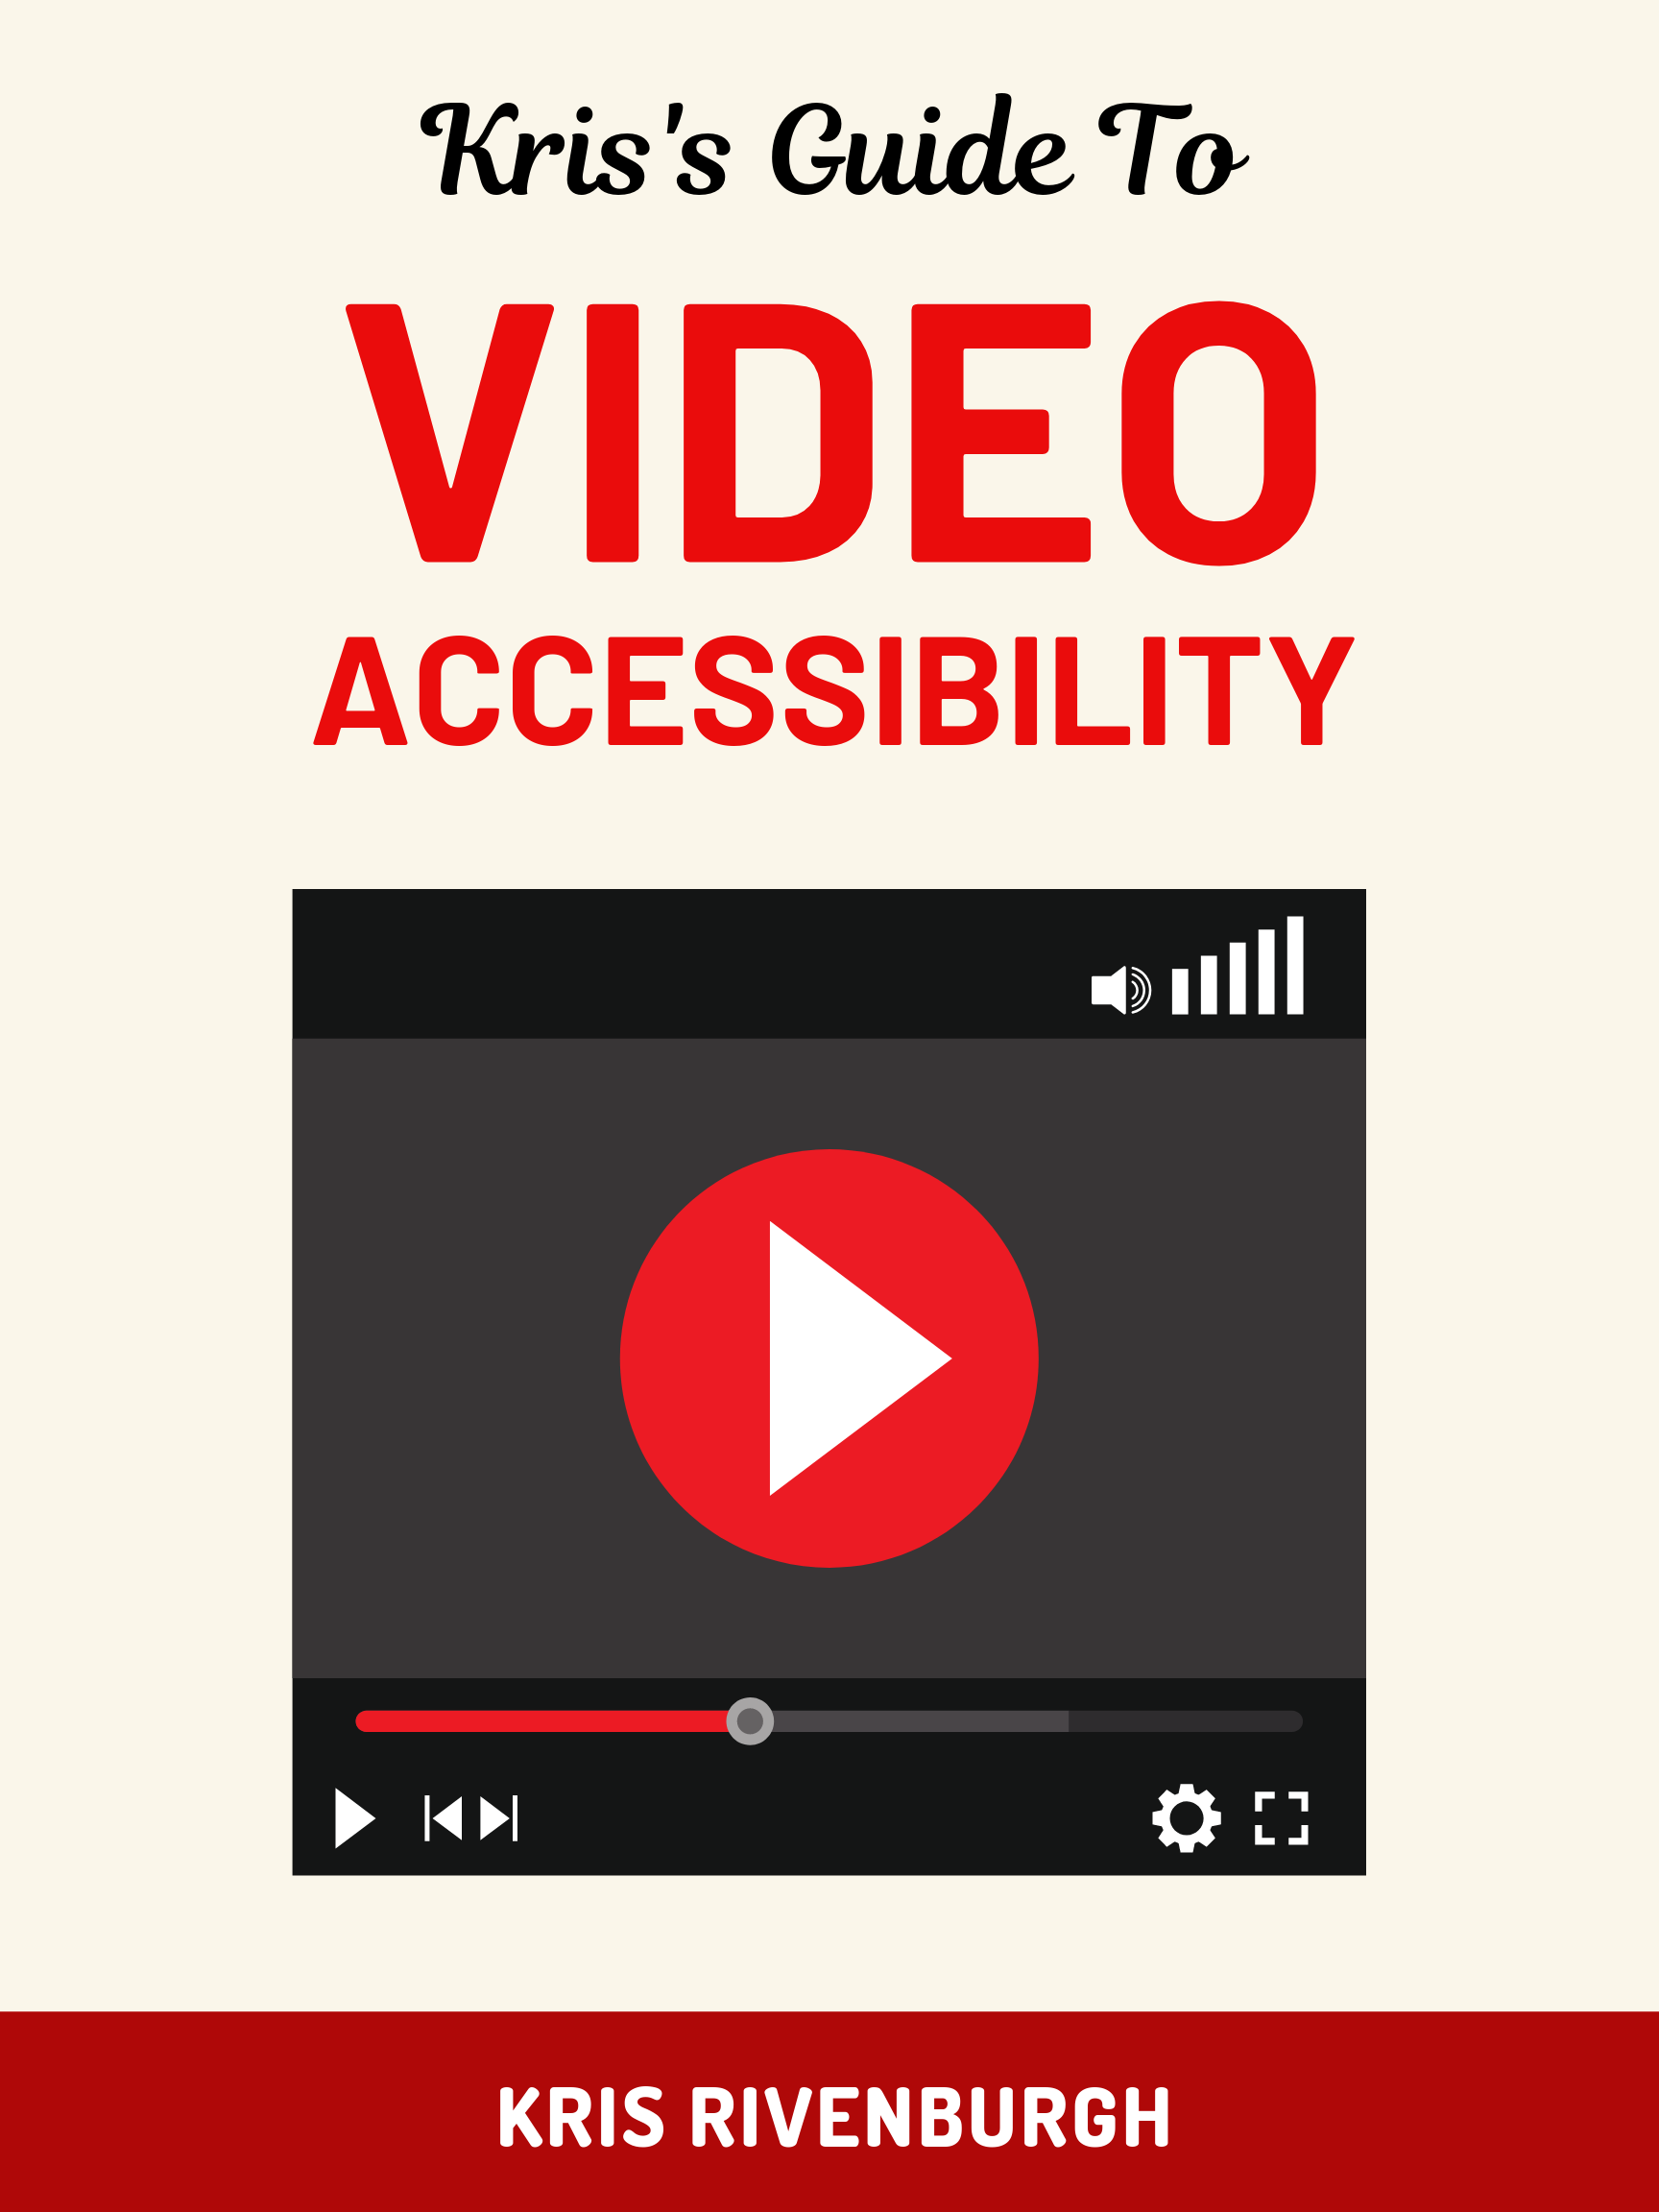 Flyer style cover for article: Kris's Guide to Video Accessibility with YouTube player icon with controls, by Kris Rivenburgh